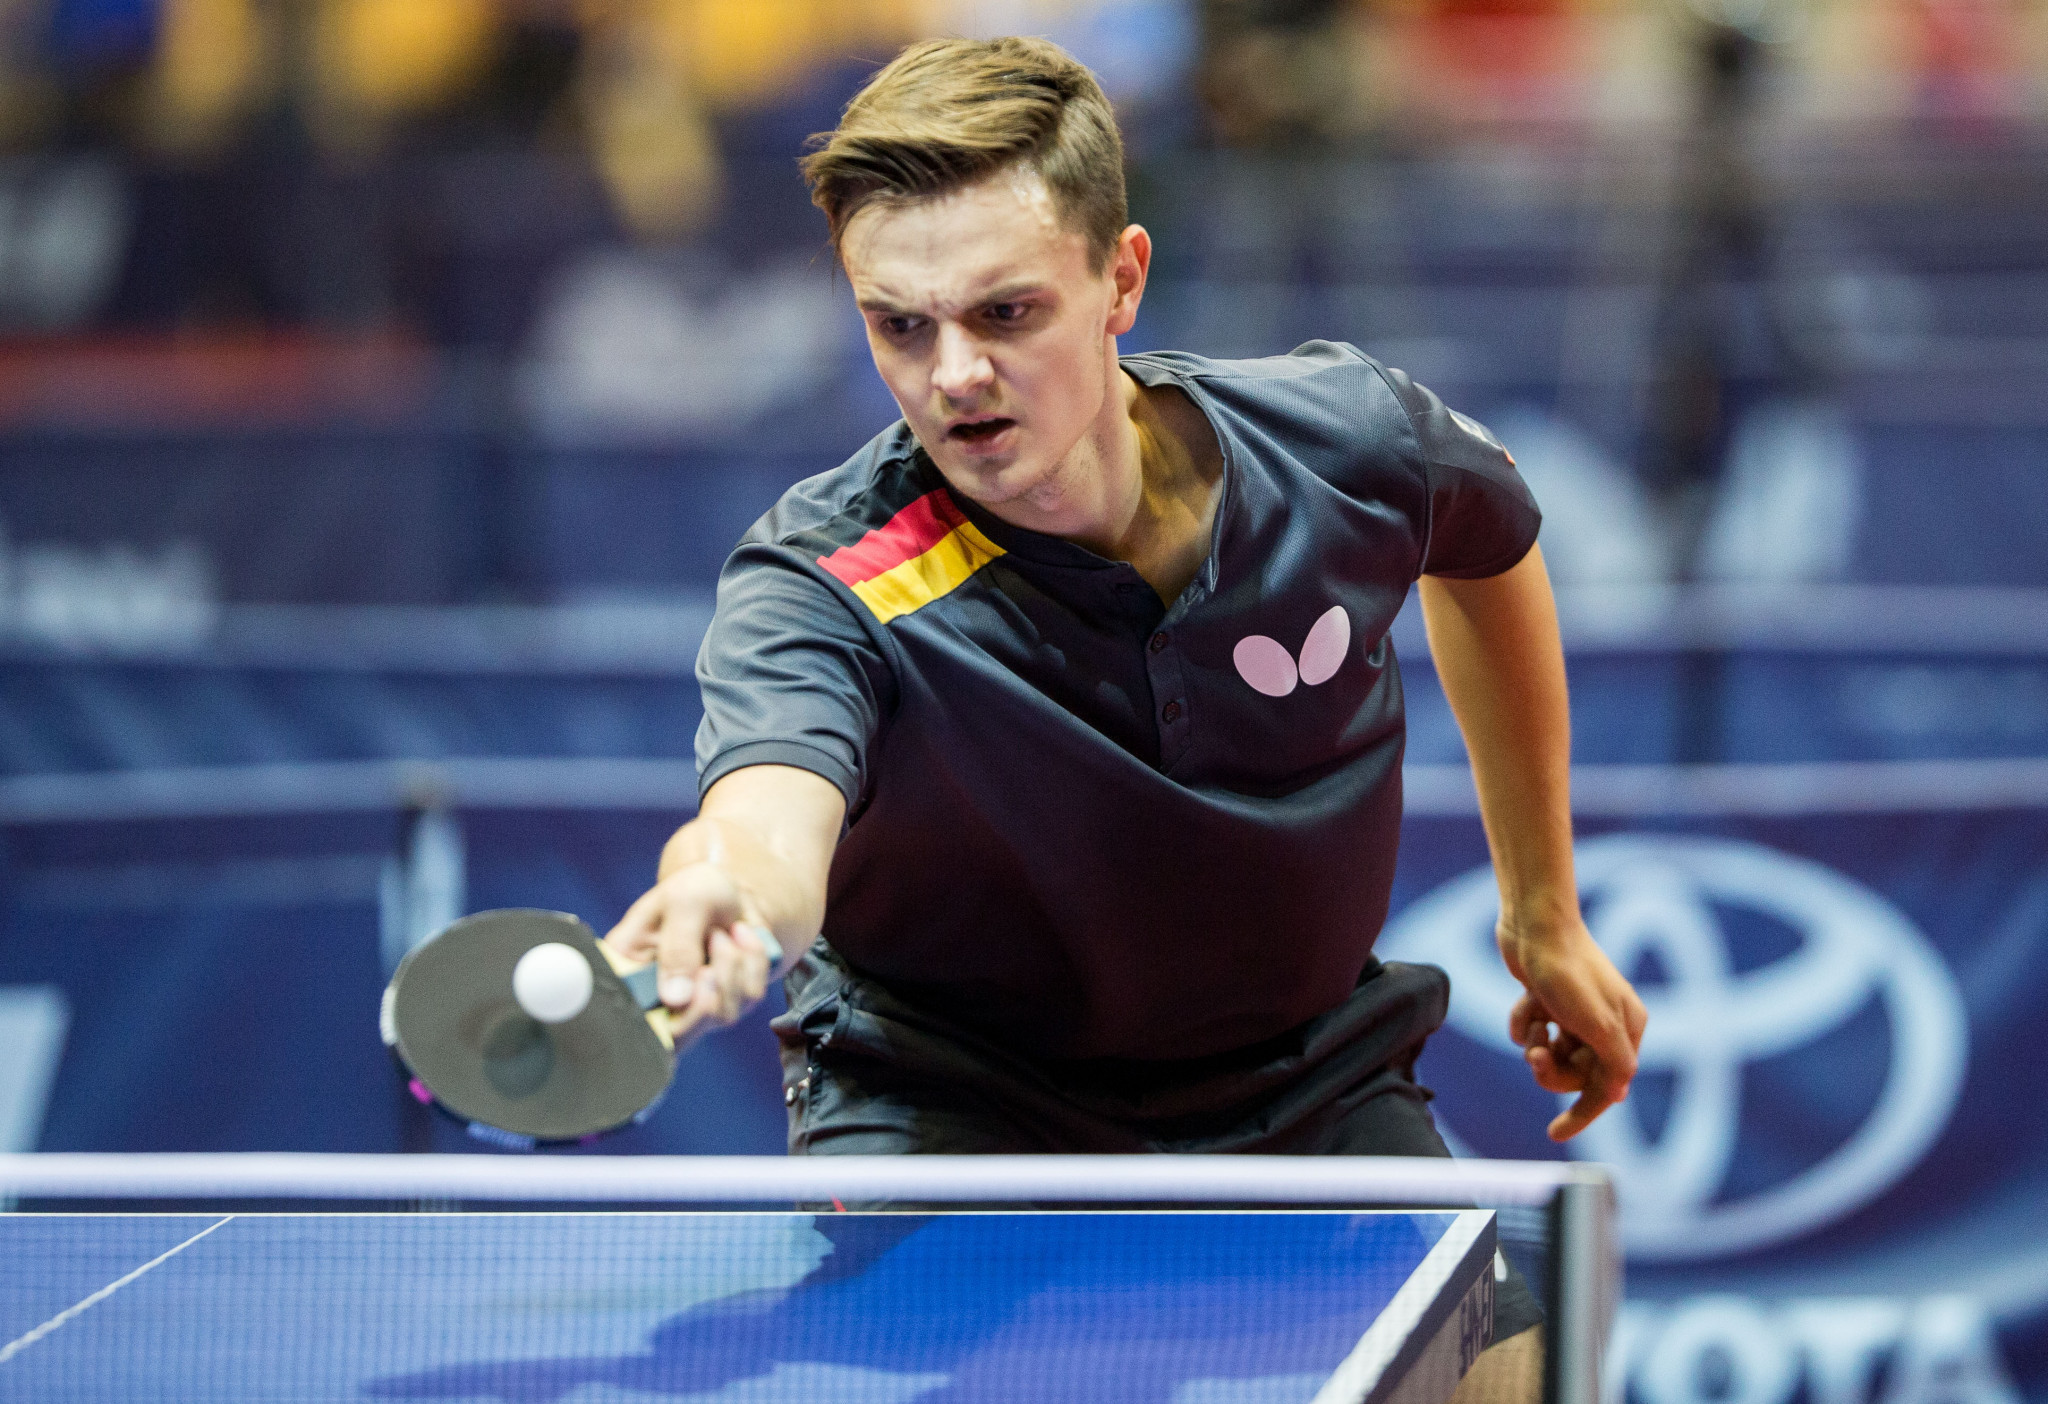 The new ball will be used at this year's Continental Championships in Europe, Oceania, Asia and Africa ©ITTF